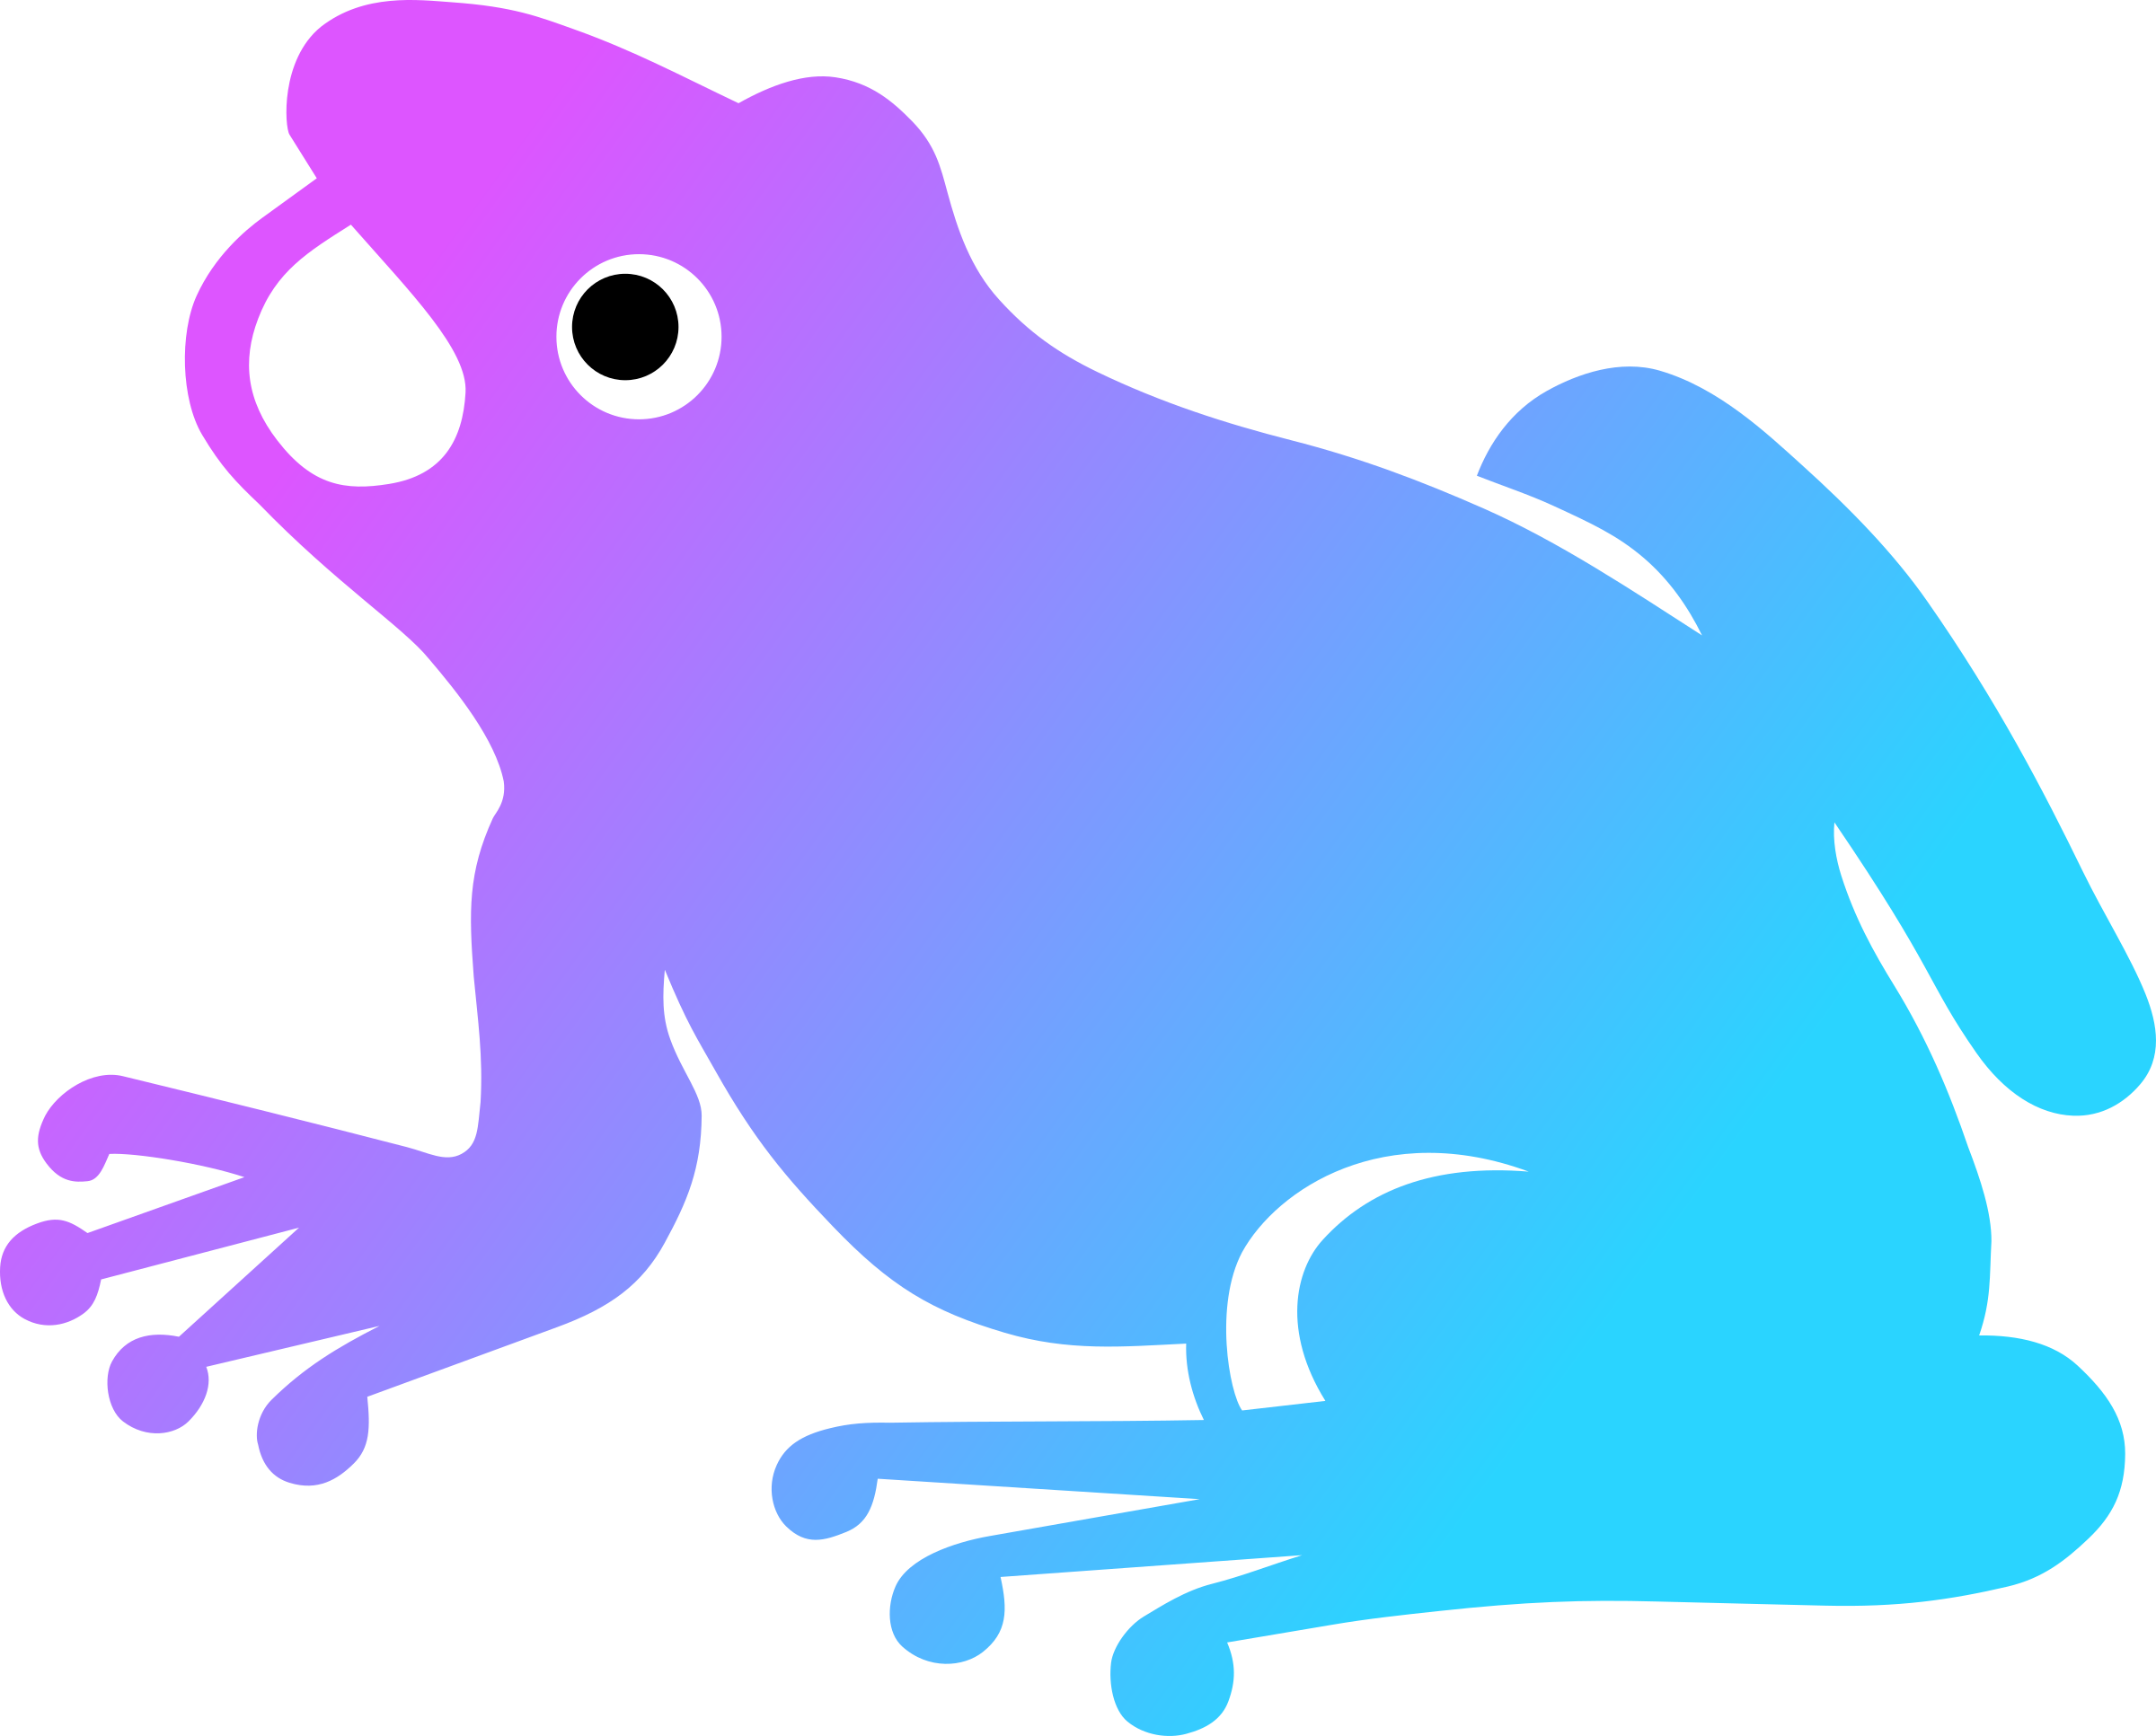 Silhouette clip art at. Frog clipart poison dart frog